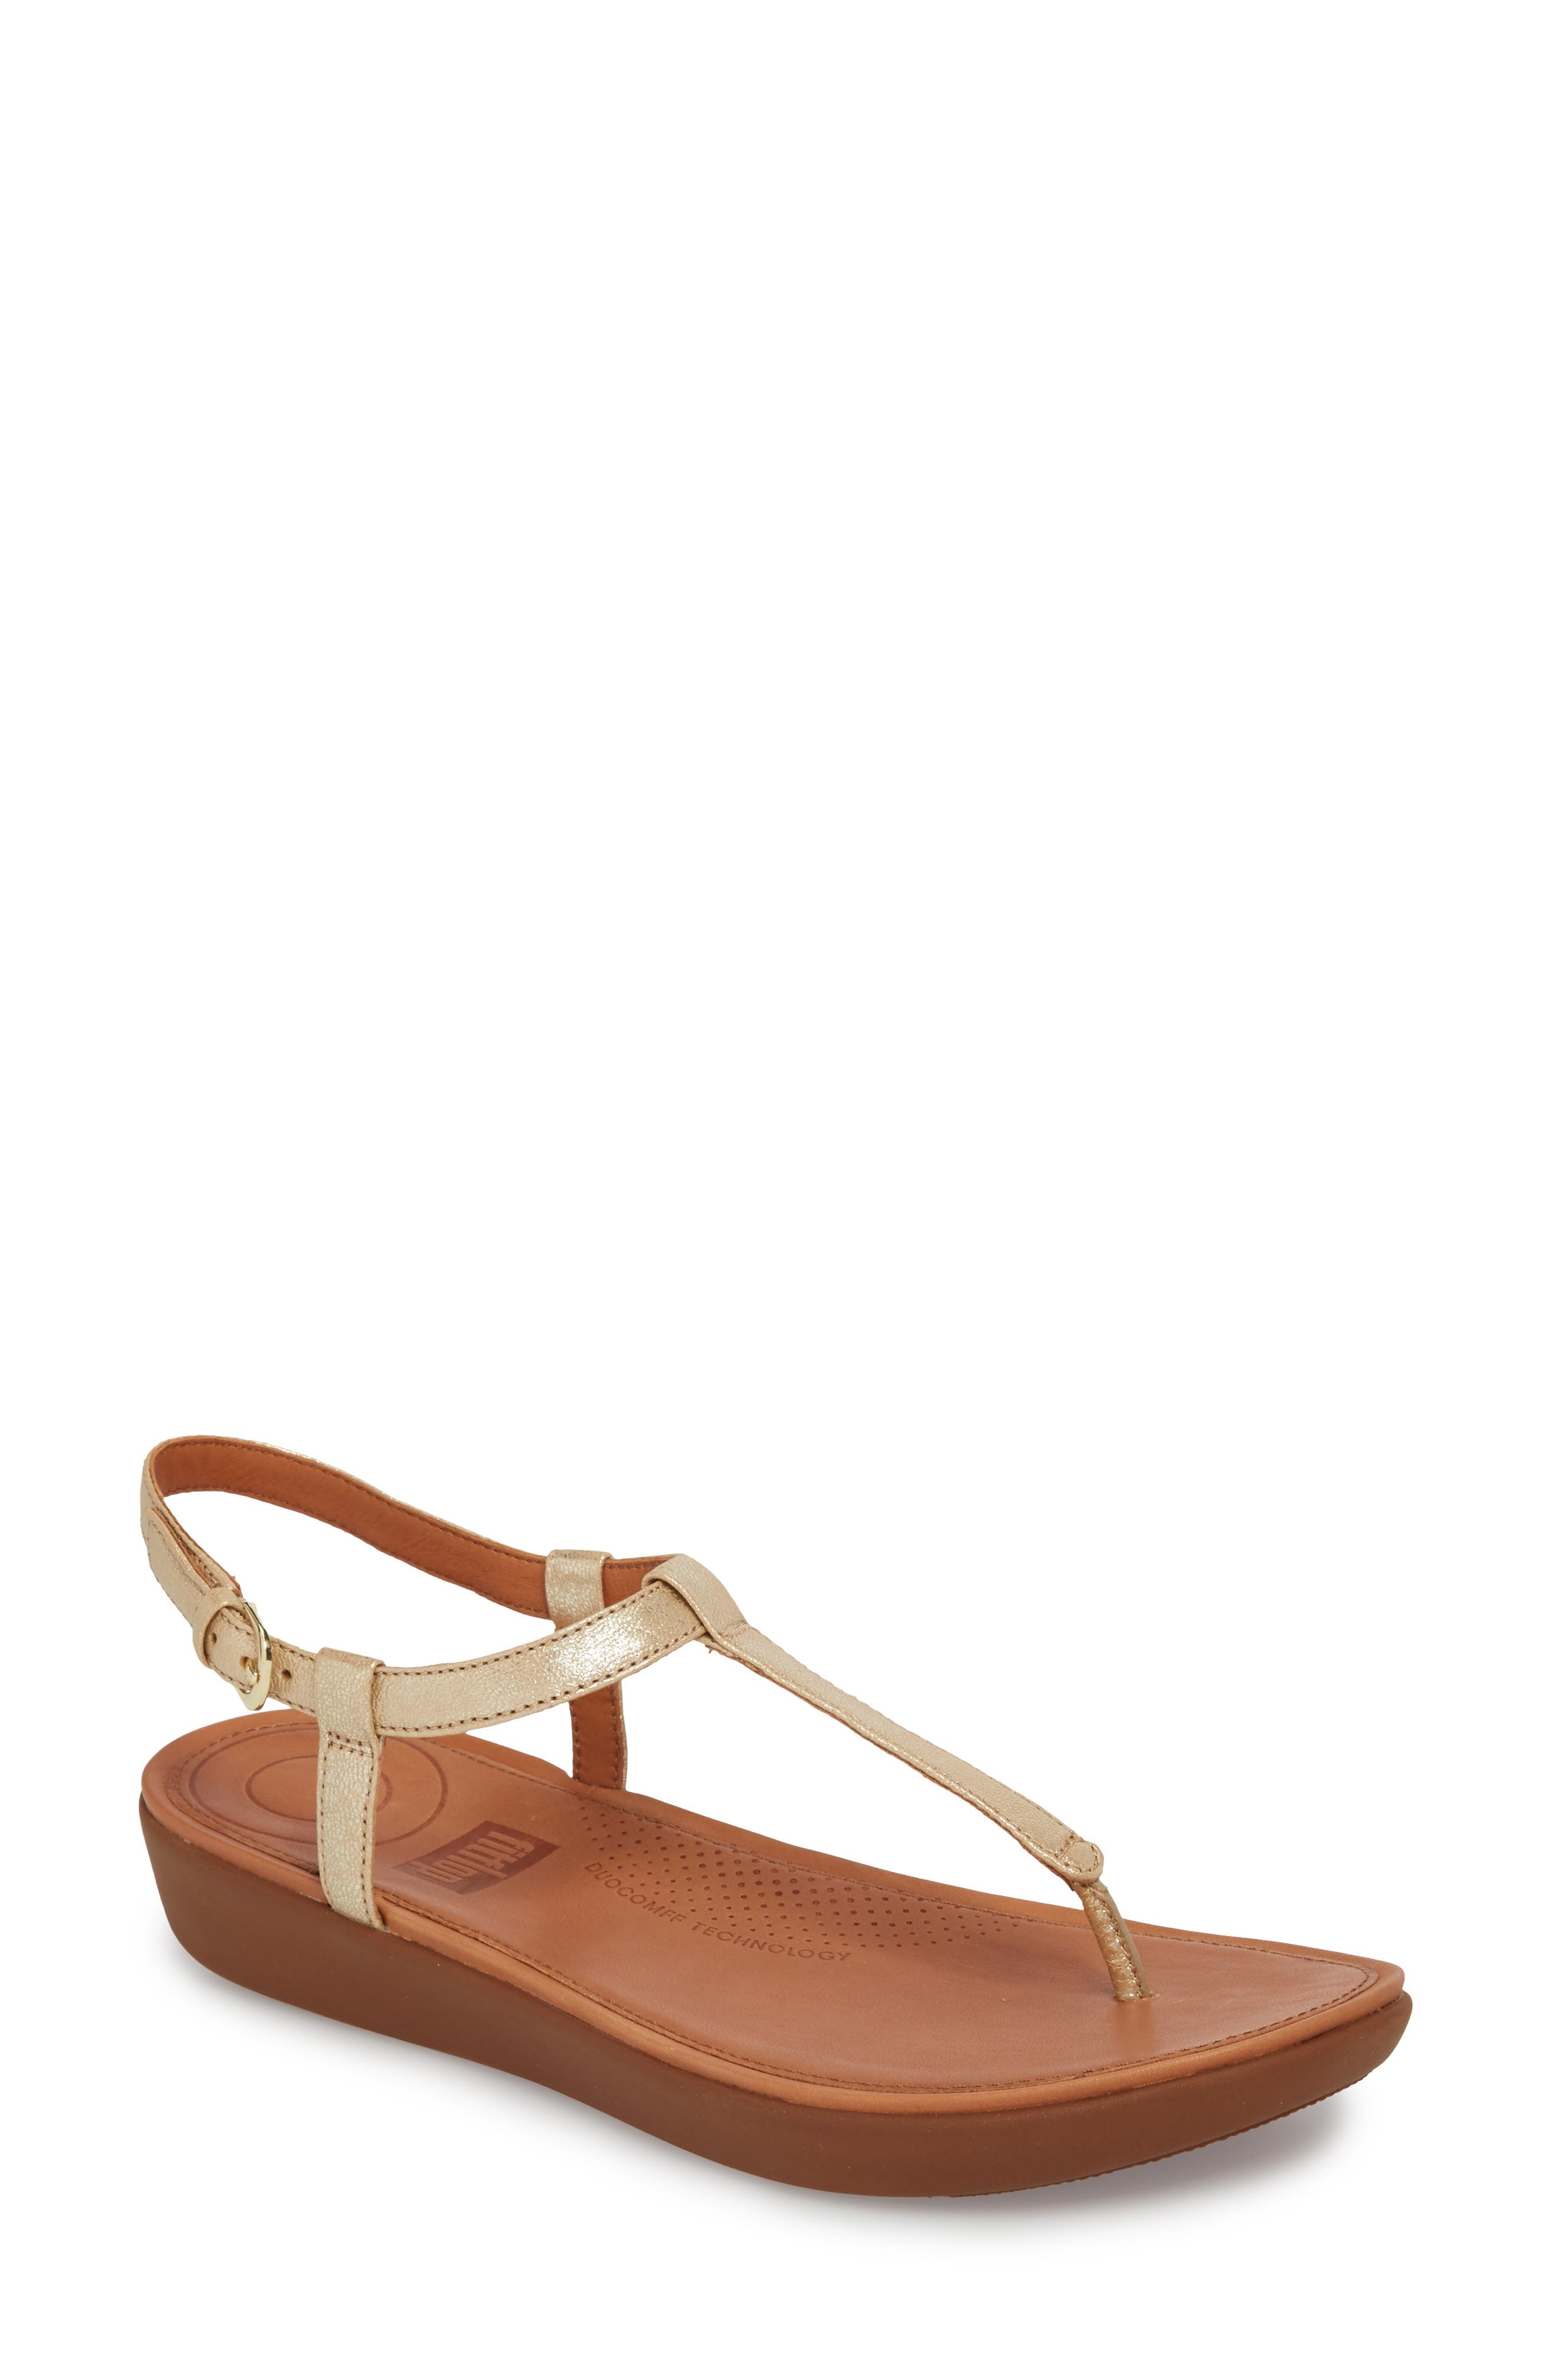 Tia Thong Sandal,                         Main,                         color, PALE GOLD LEATHER